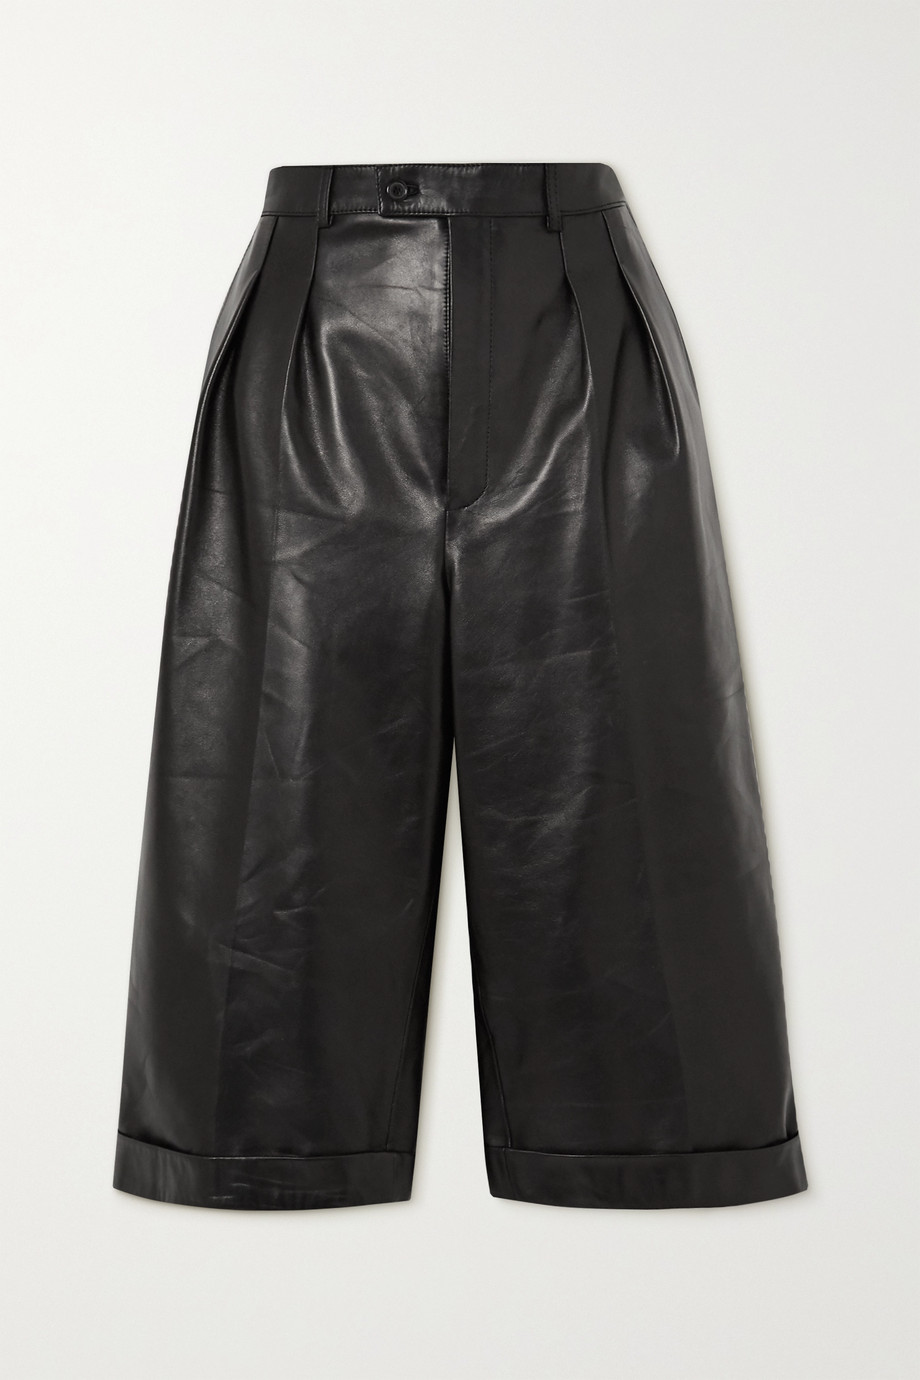 SAINT LAURENT Pleated leather shorts